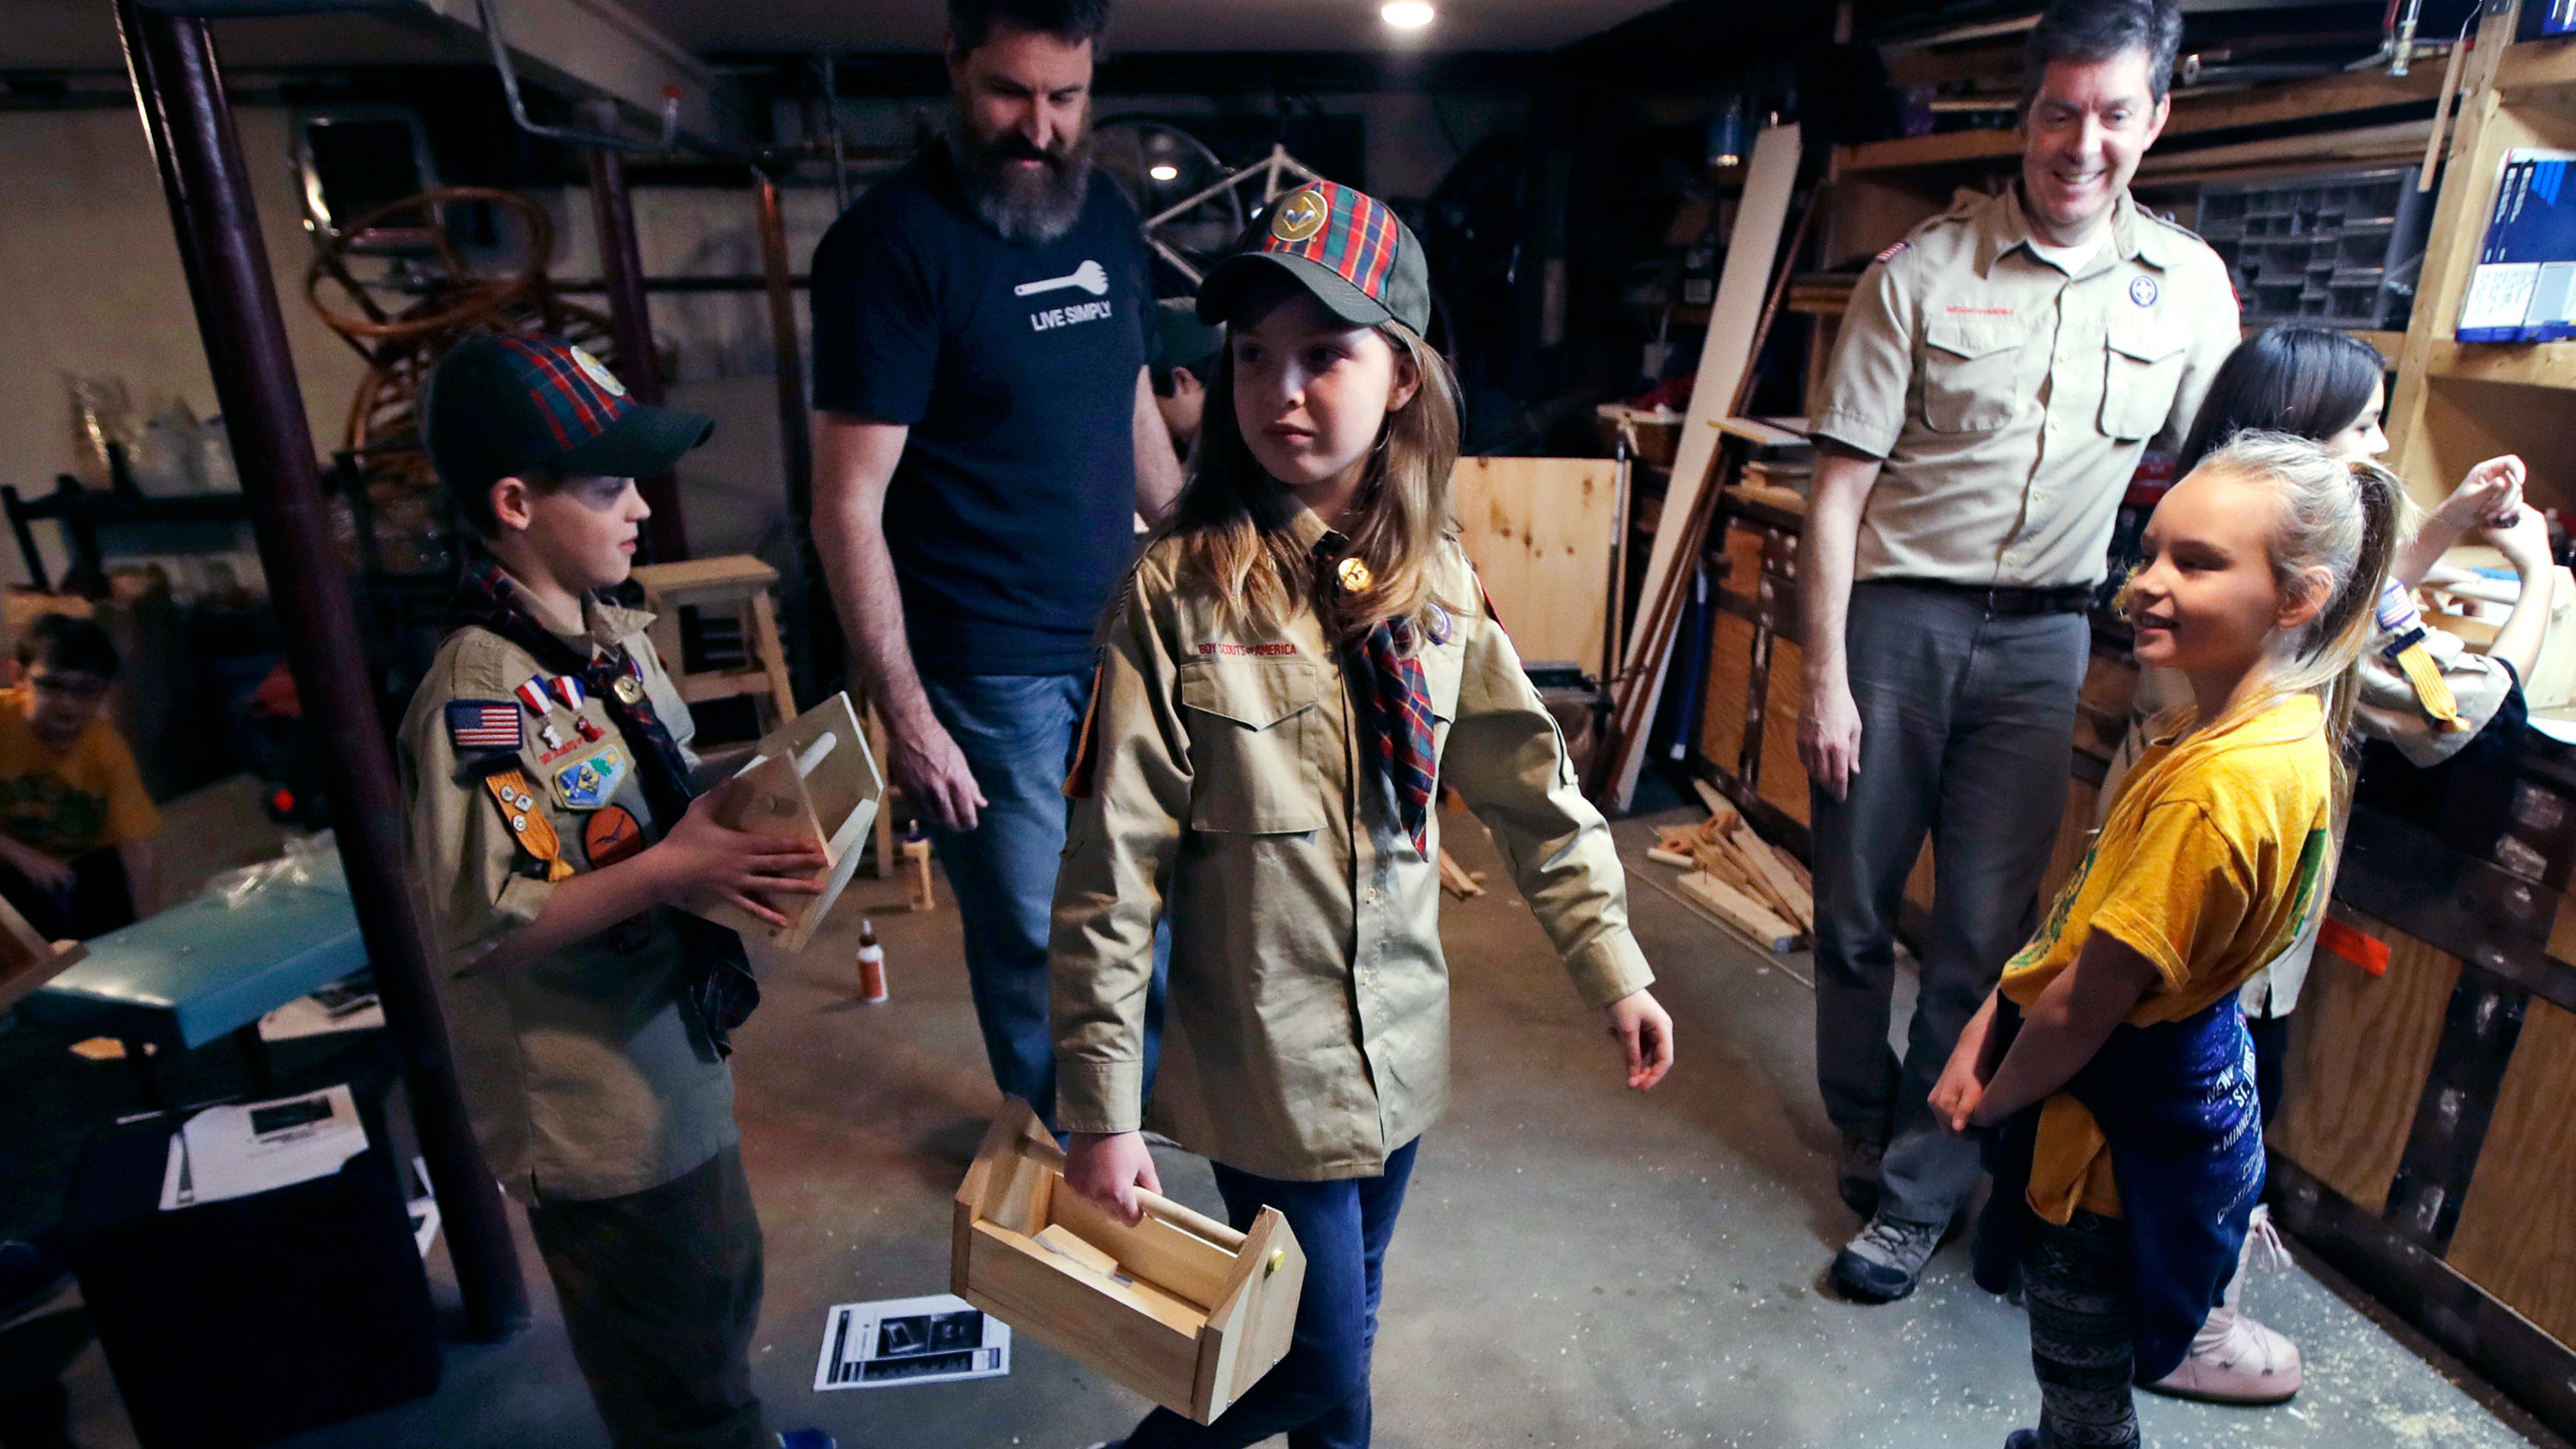 Tatum Weir (center) carries a tool box she built as her twin brother, Ian (left), follows after a Cub Scout meeting in Madbury, N.H., on March 1. For more than a century, the Boy Scouts of America's flagship program for older boys has been known as the Boy Scouts. With girls soon entering the ranks, the name will change to